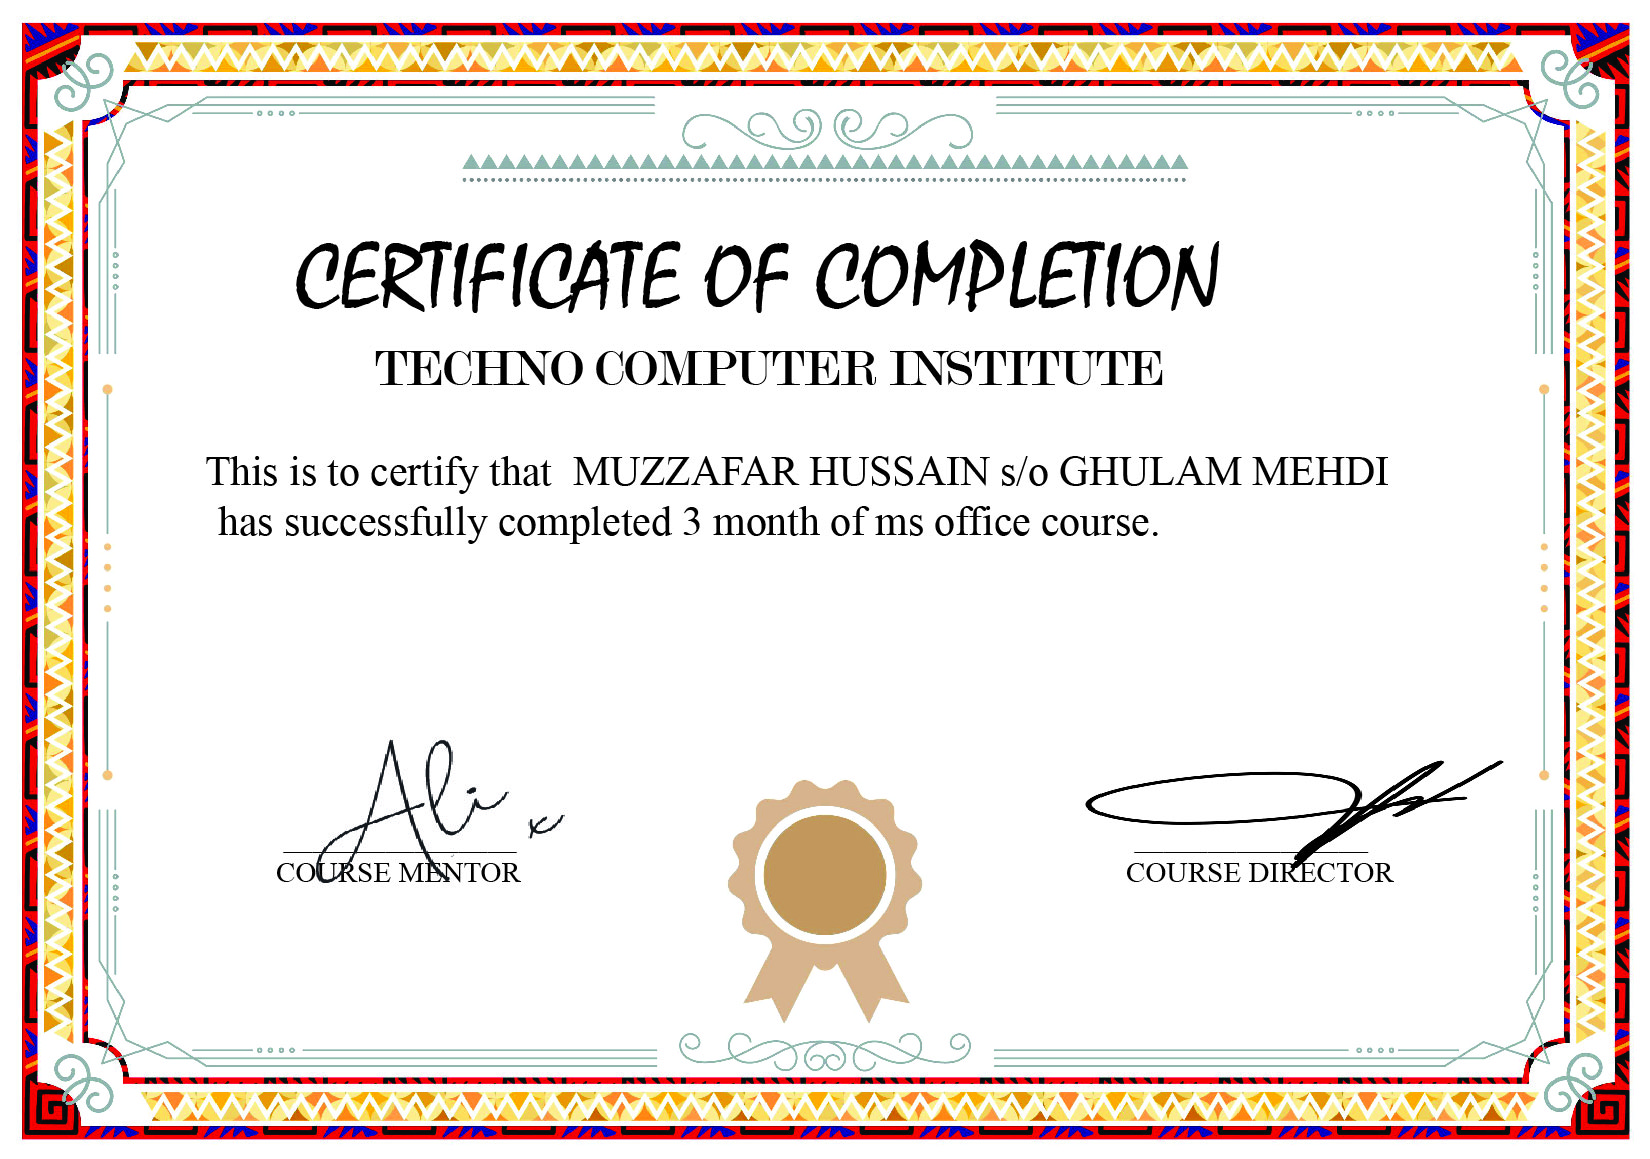 i can create a high resolution Academic or any type of Certificate for you in a professional way